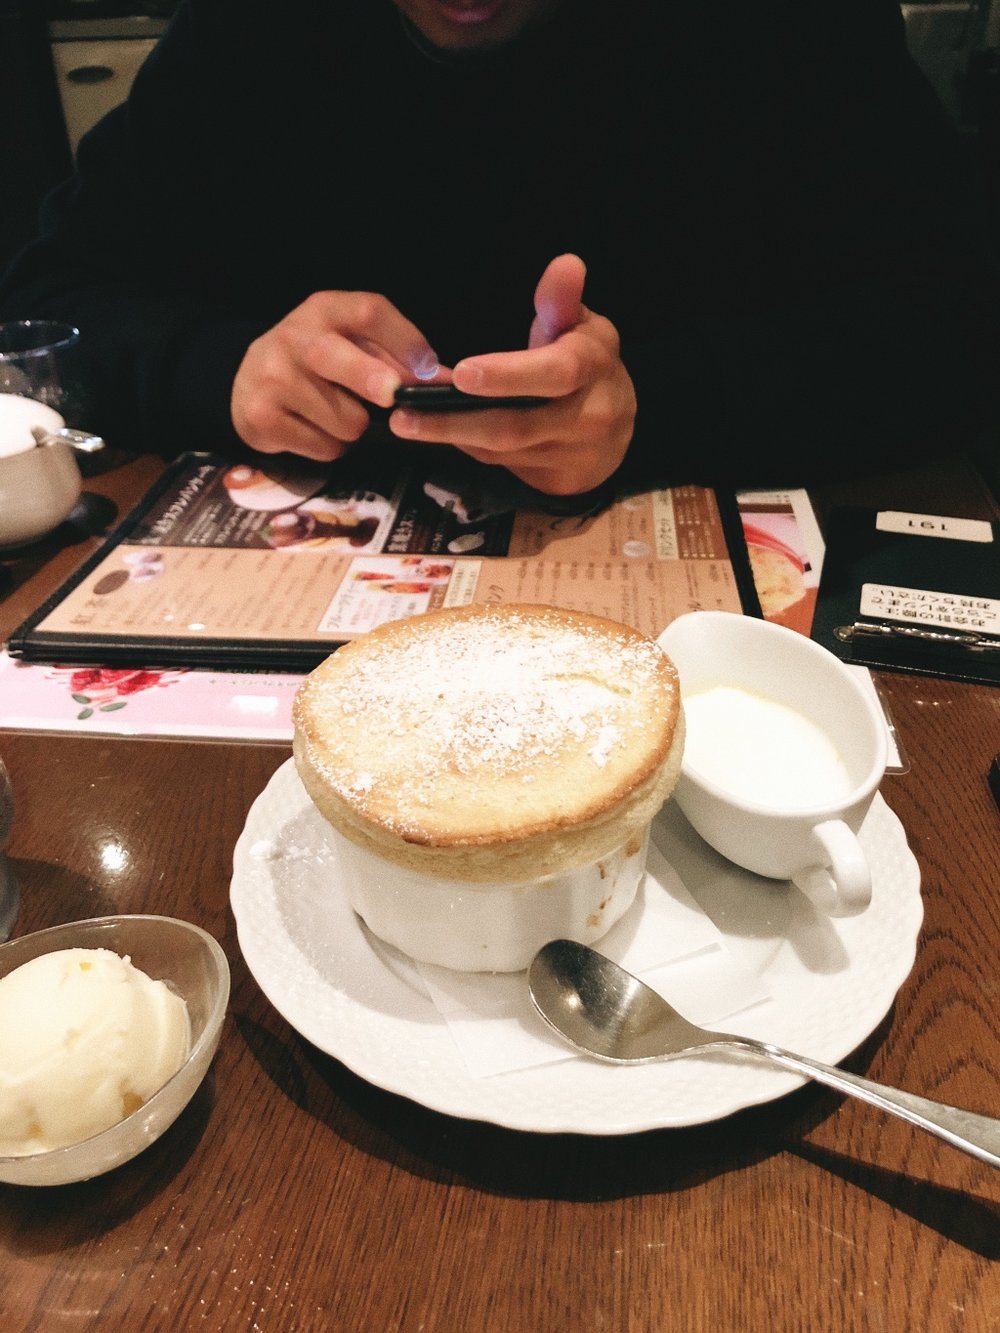 We were craving dessert and I surprisingly loved all of Japan's coffeeshops I went to on this trip. I wish I could've gone to more. I had this warm Japanese soufflé topped with vanilla cream which was delicate and not overly sweet.